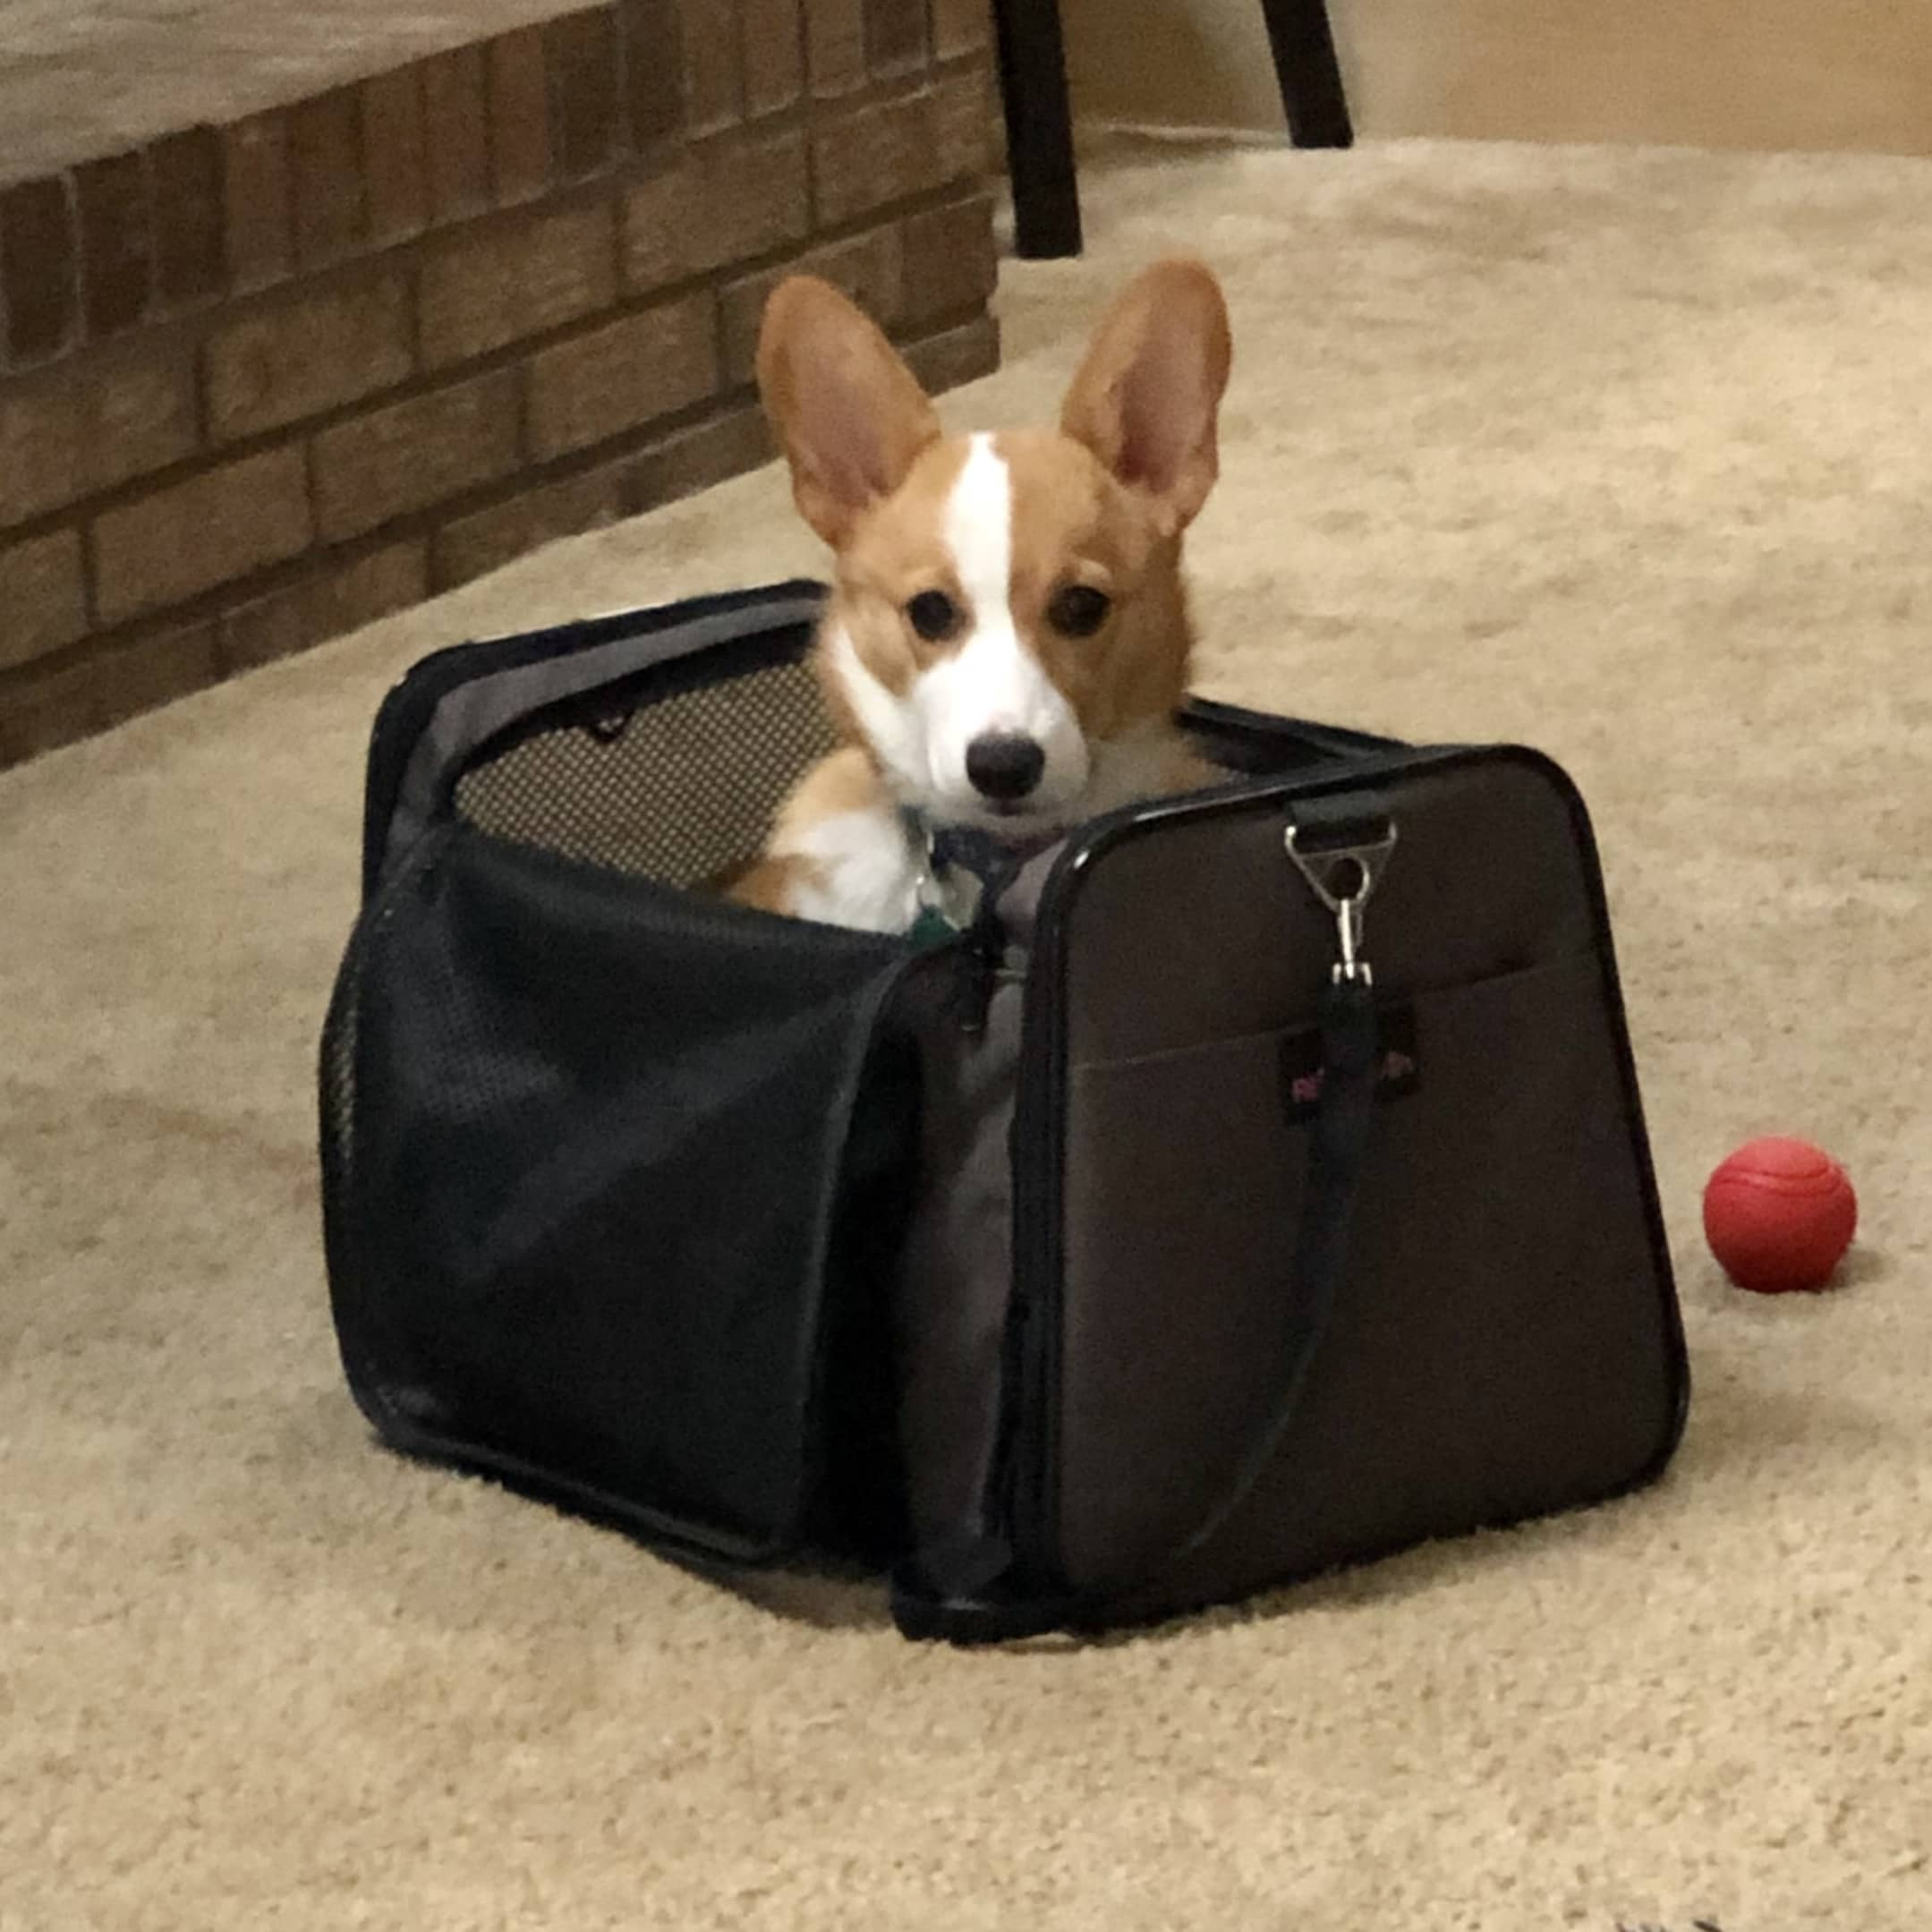 Marvel the corgi sitting in a bag